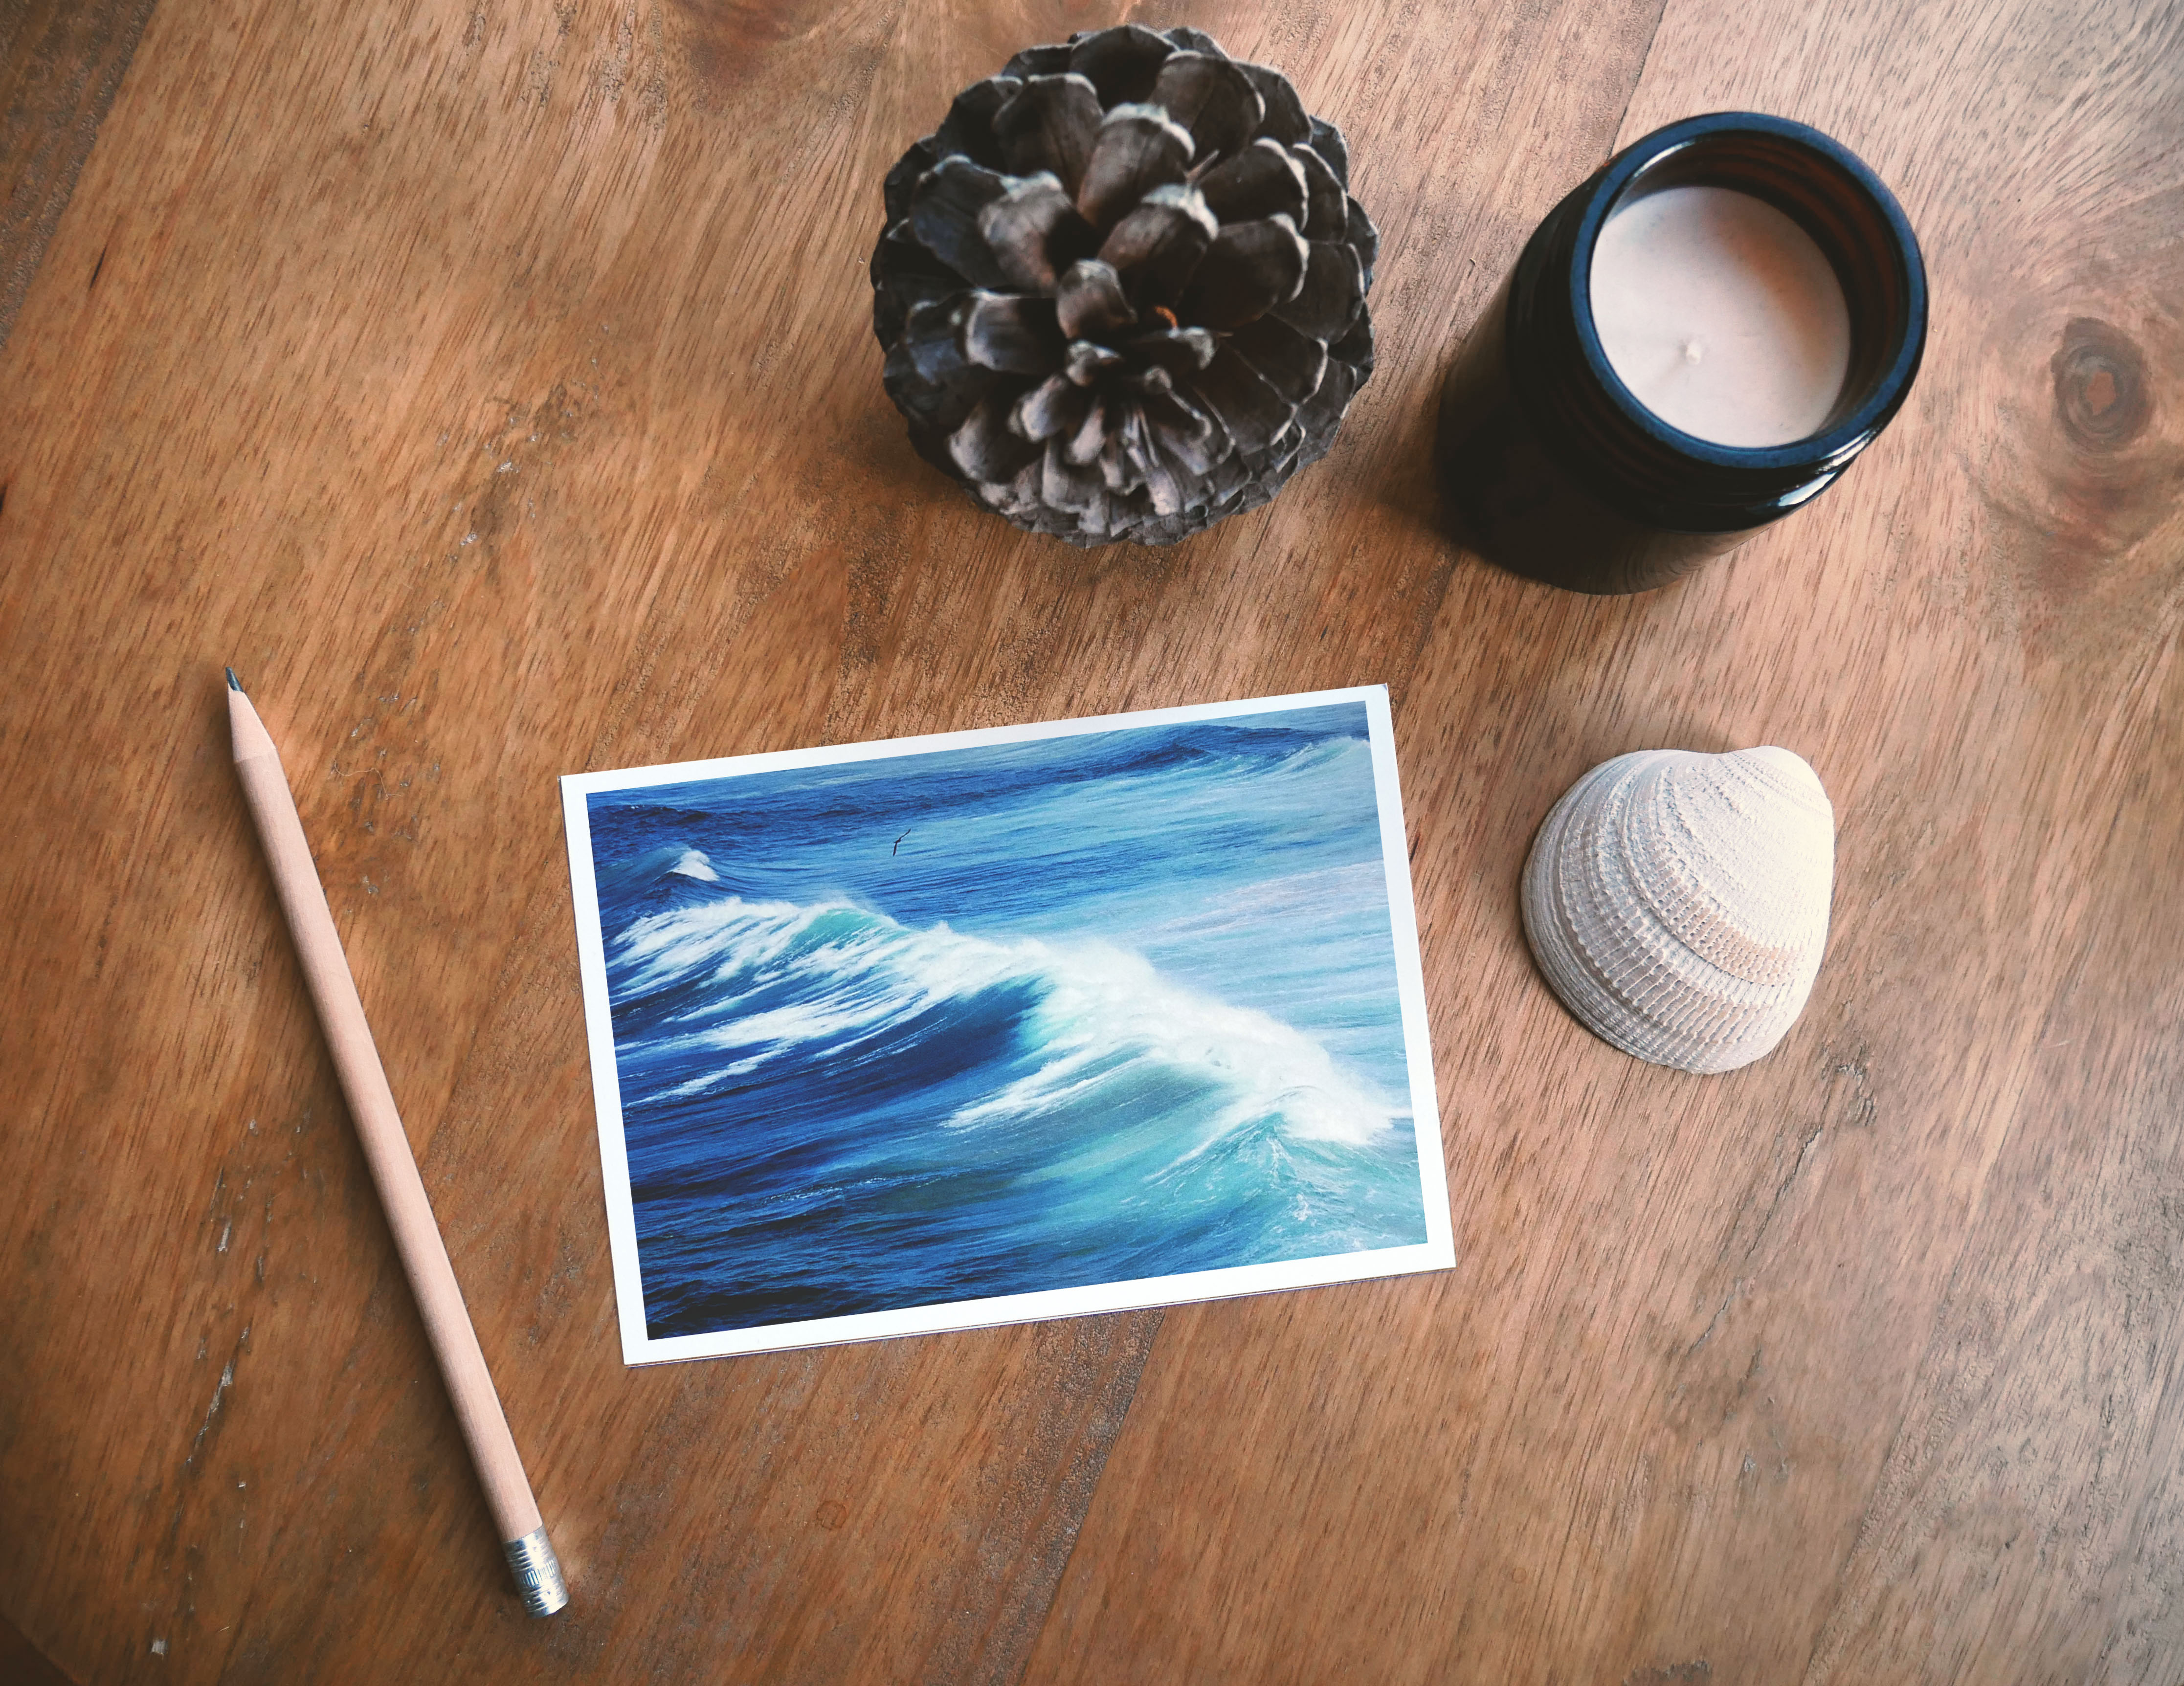 Ocean postcard on a wooden table next to a pencil, a shell, a candle and a pine cone